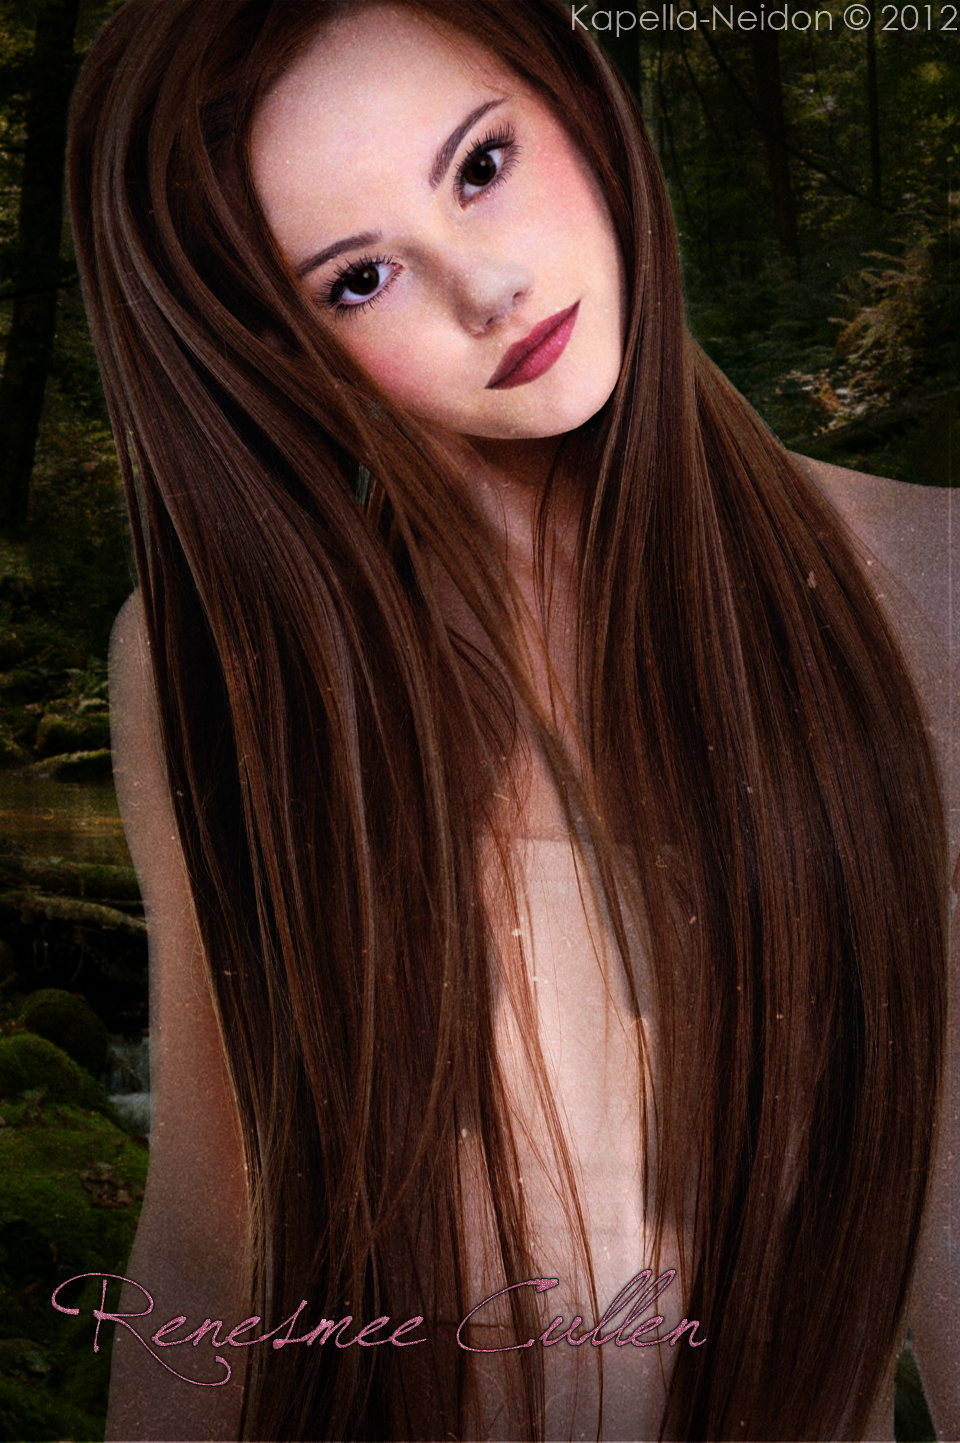 Renesmee Cullen by YlianaKapella-Neidon on DeviantArt